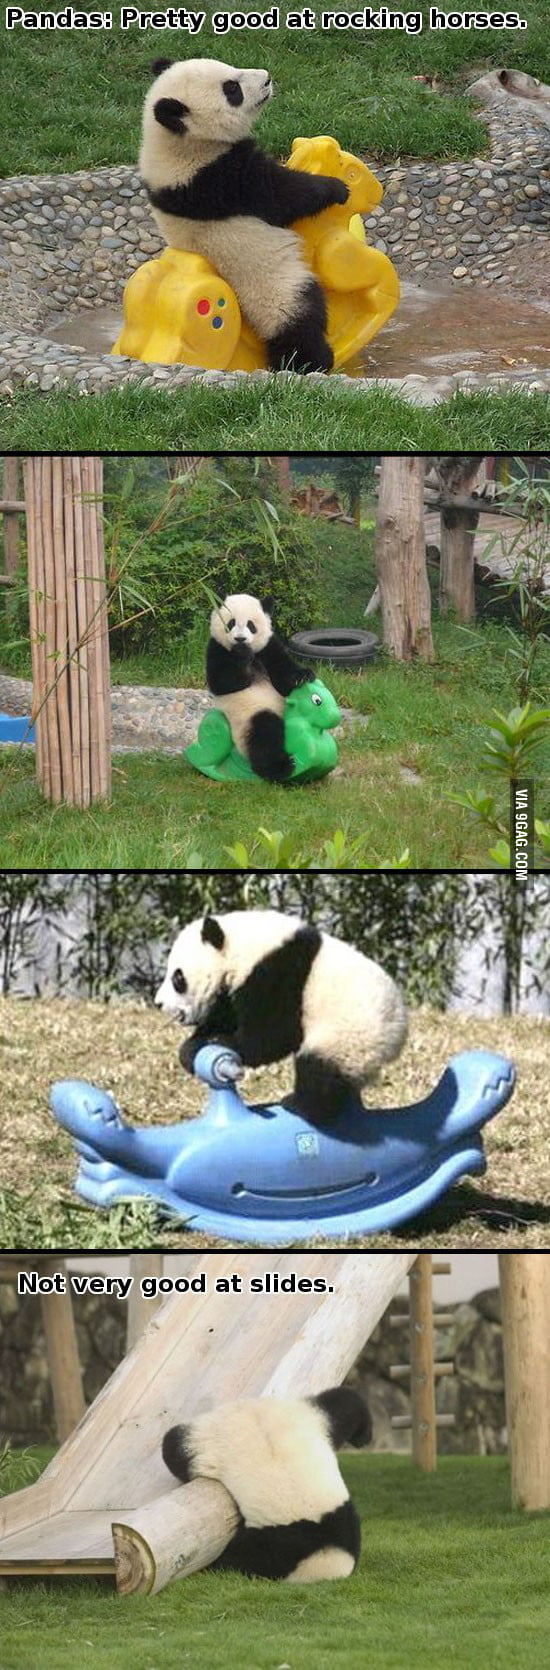 Pandas -- from David Attenborough's deleted scenes.